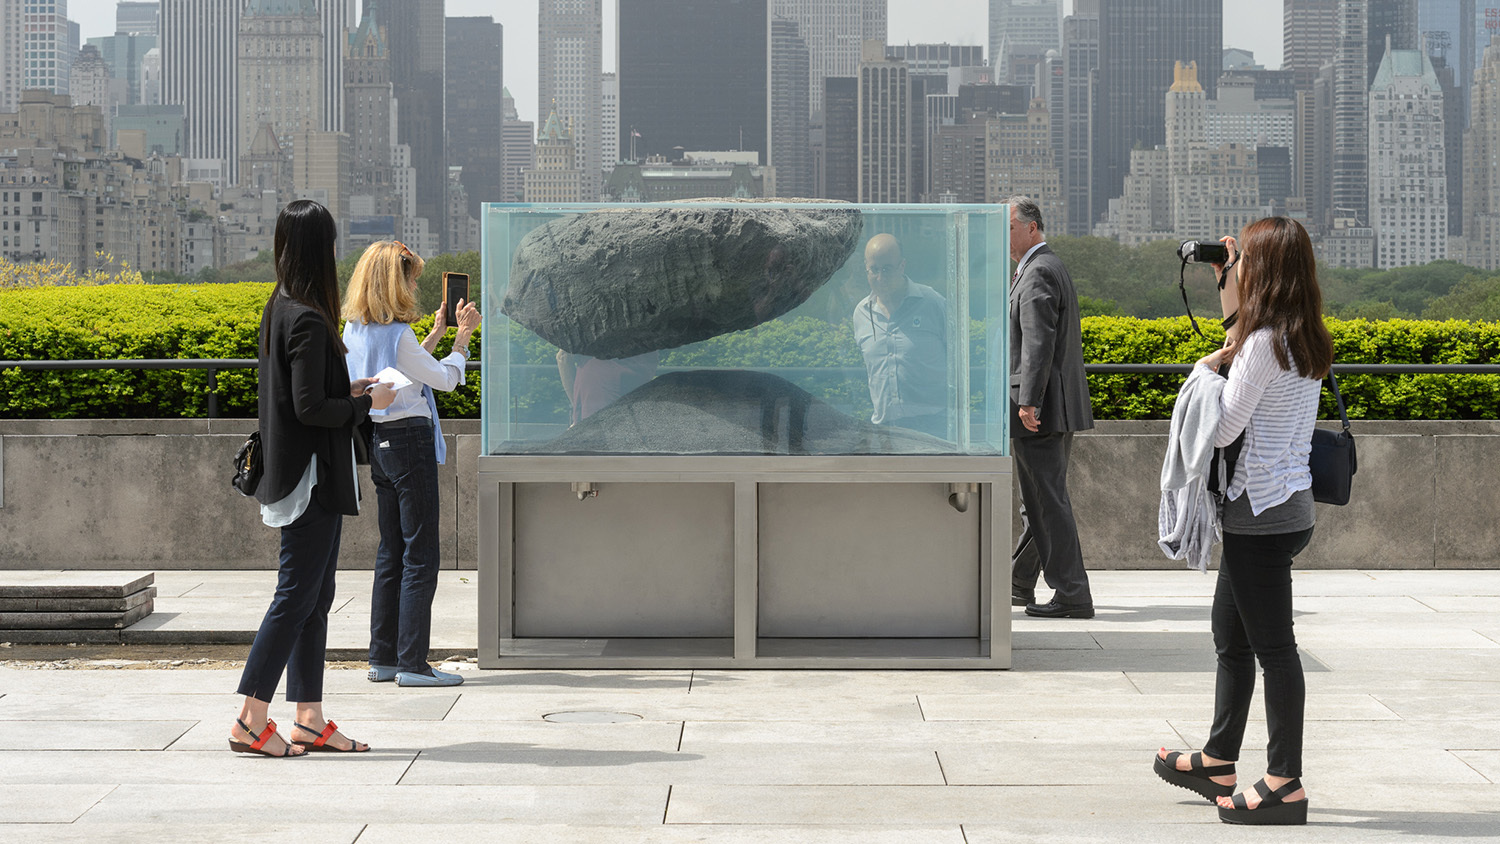 See photos of the Metropolitan Museum's new rooftop commission